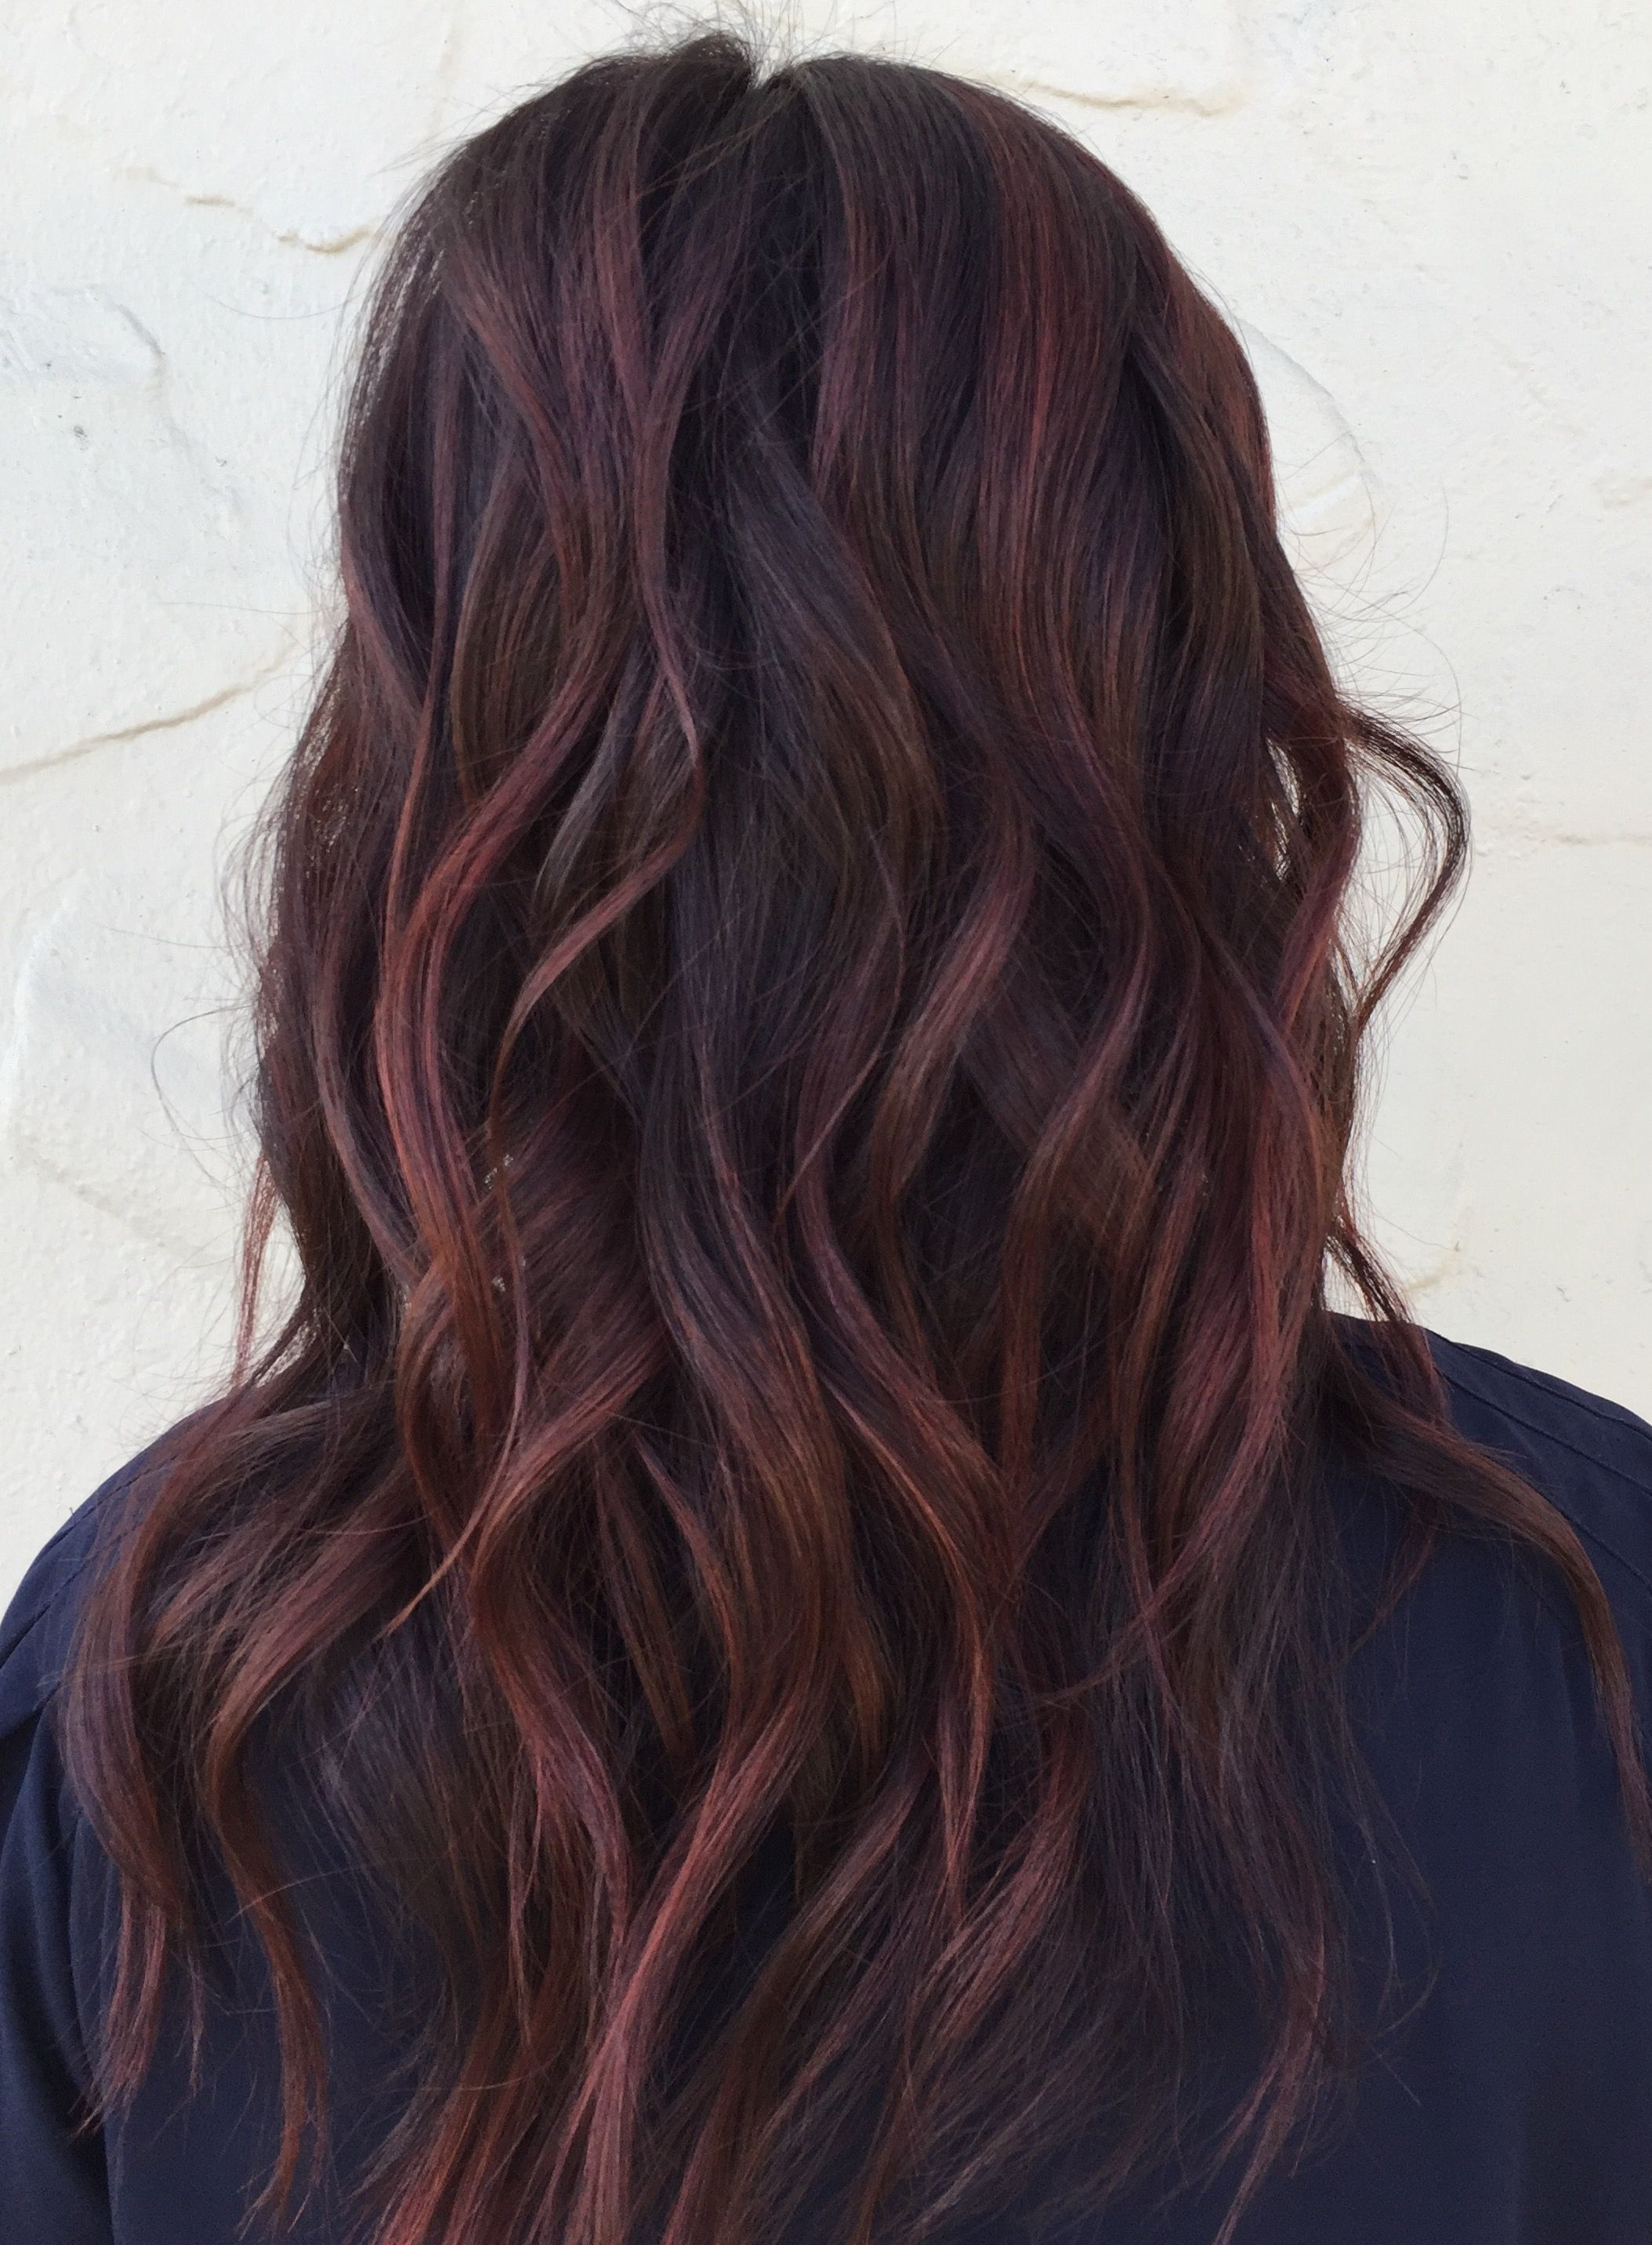 Winter Cool Tones Balayage Brunette Hair Color Red Tint Hair Hair Tint